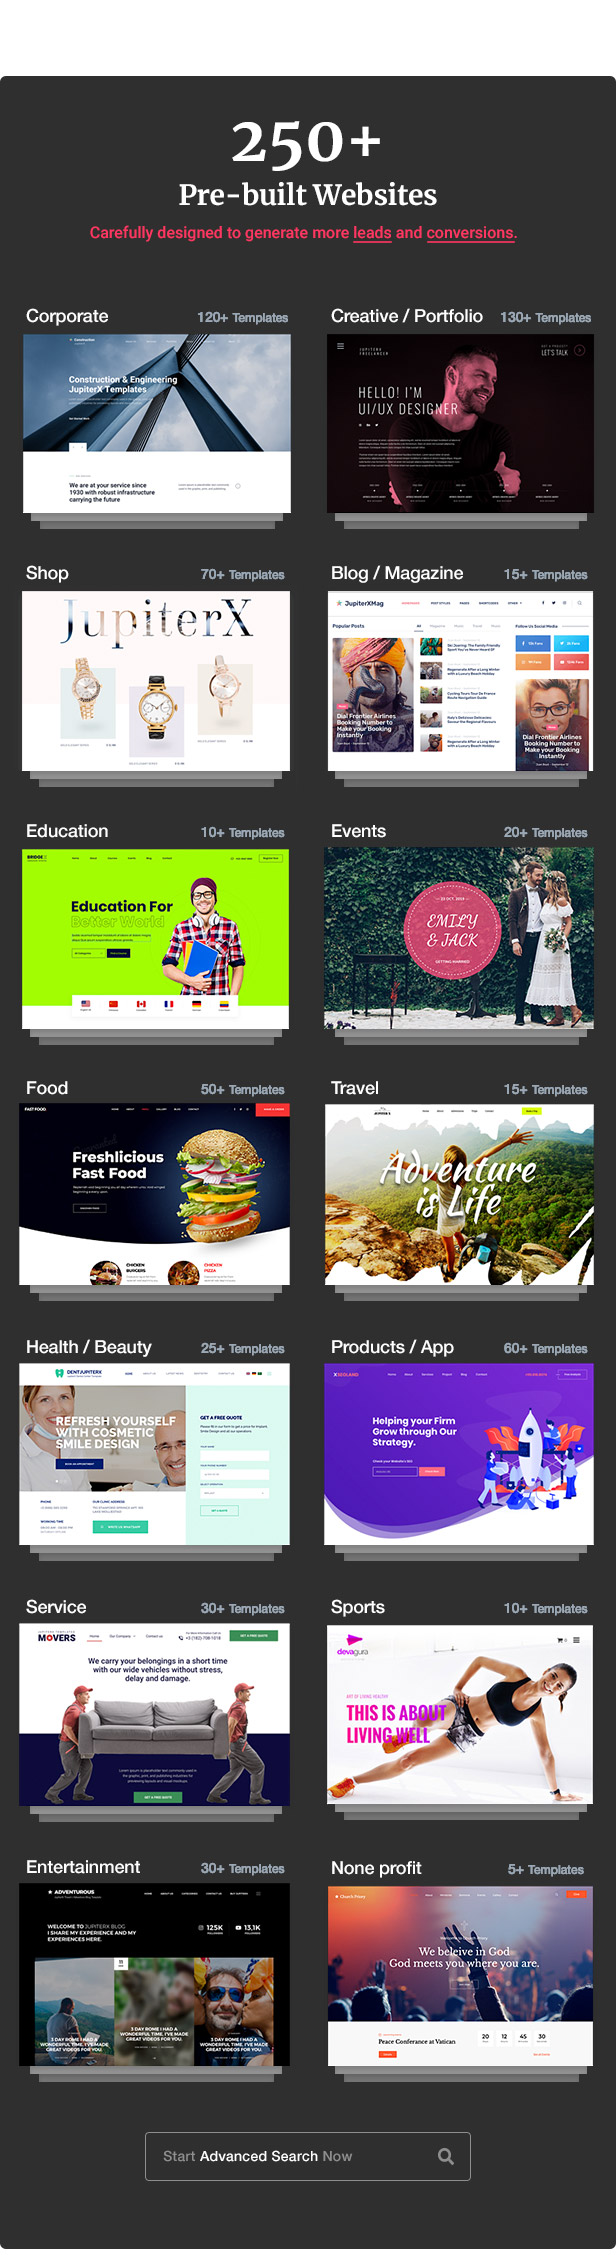 Jupiter - Multi-Purpose Responsive Theme - 3